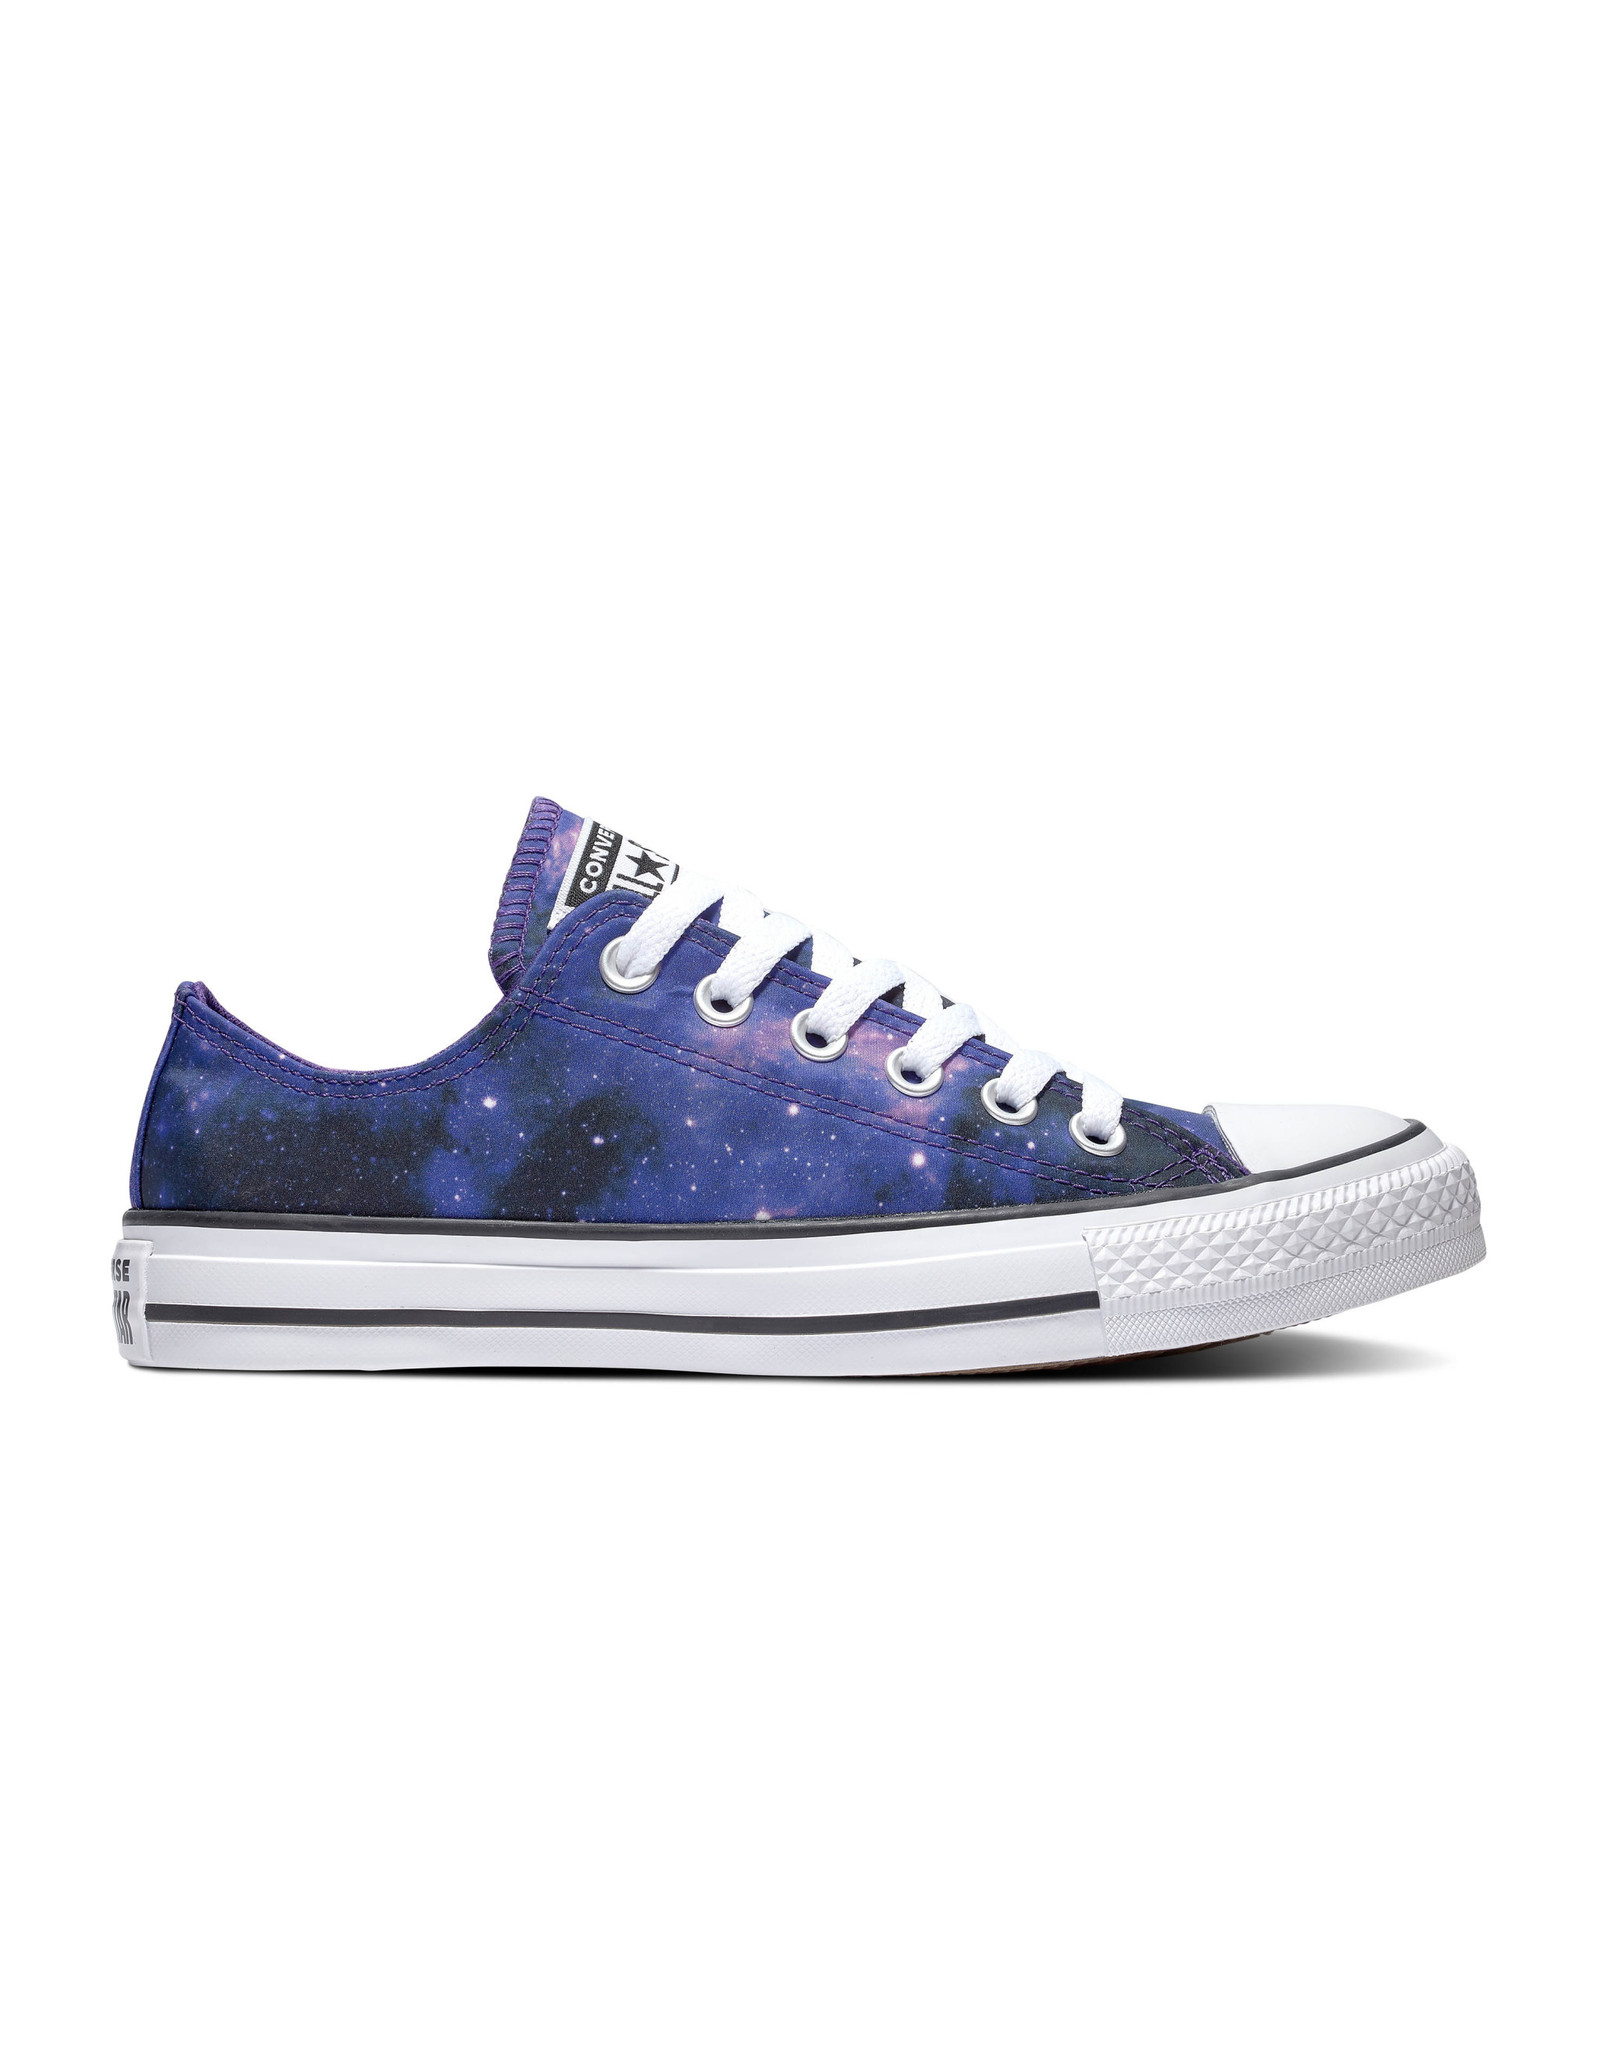 CONVERSE CHUCK TAYLOR ALL STAR OX BLACK/COURT PURPLE/WHITE C13GALP-565209C